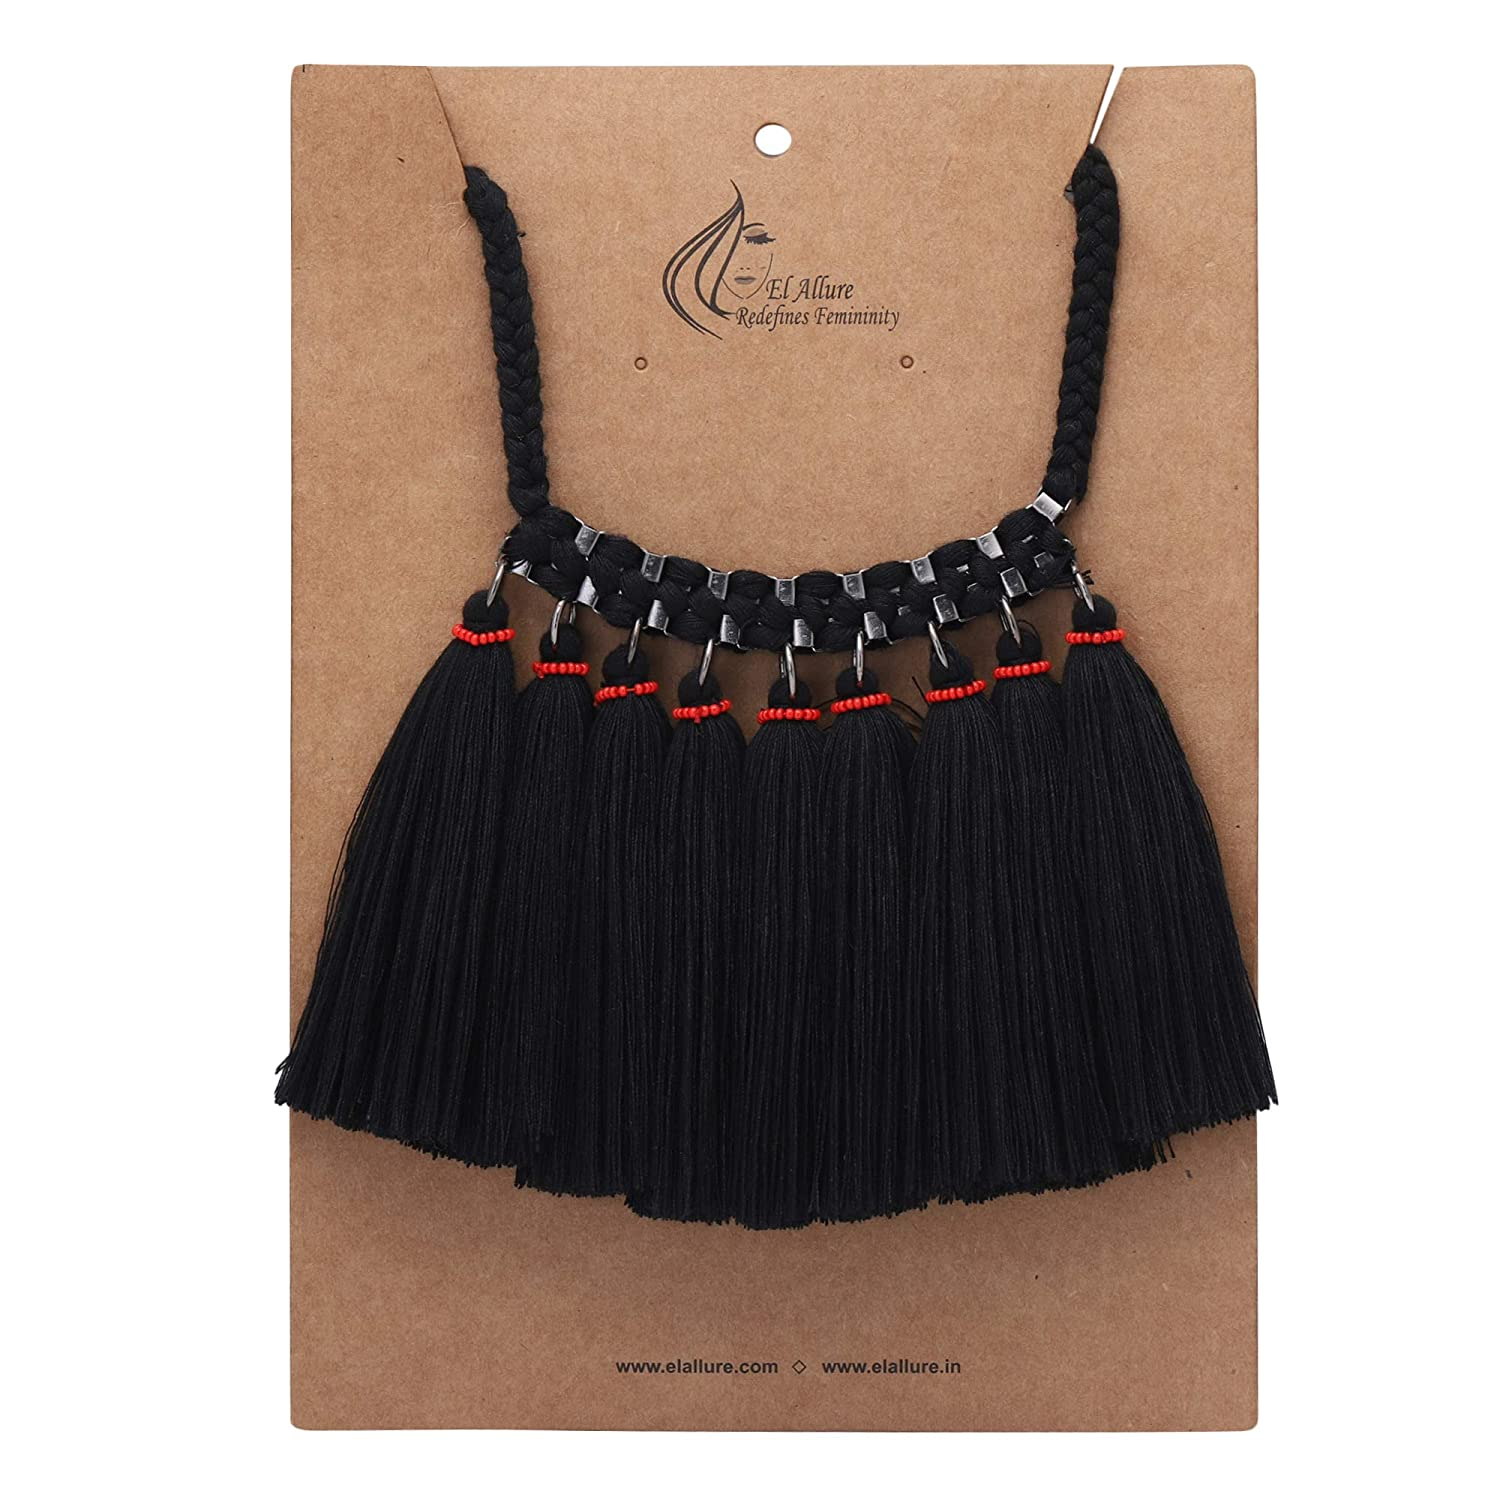 El Allure Cotton Soft Thread Tassels and Seed Bead with Braided Rope Fitting Black Trendy Handmade Necklace for Women.